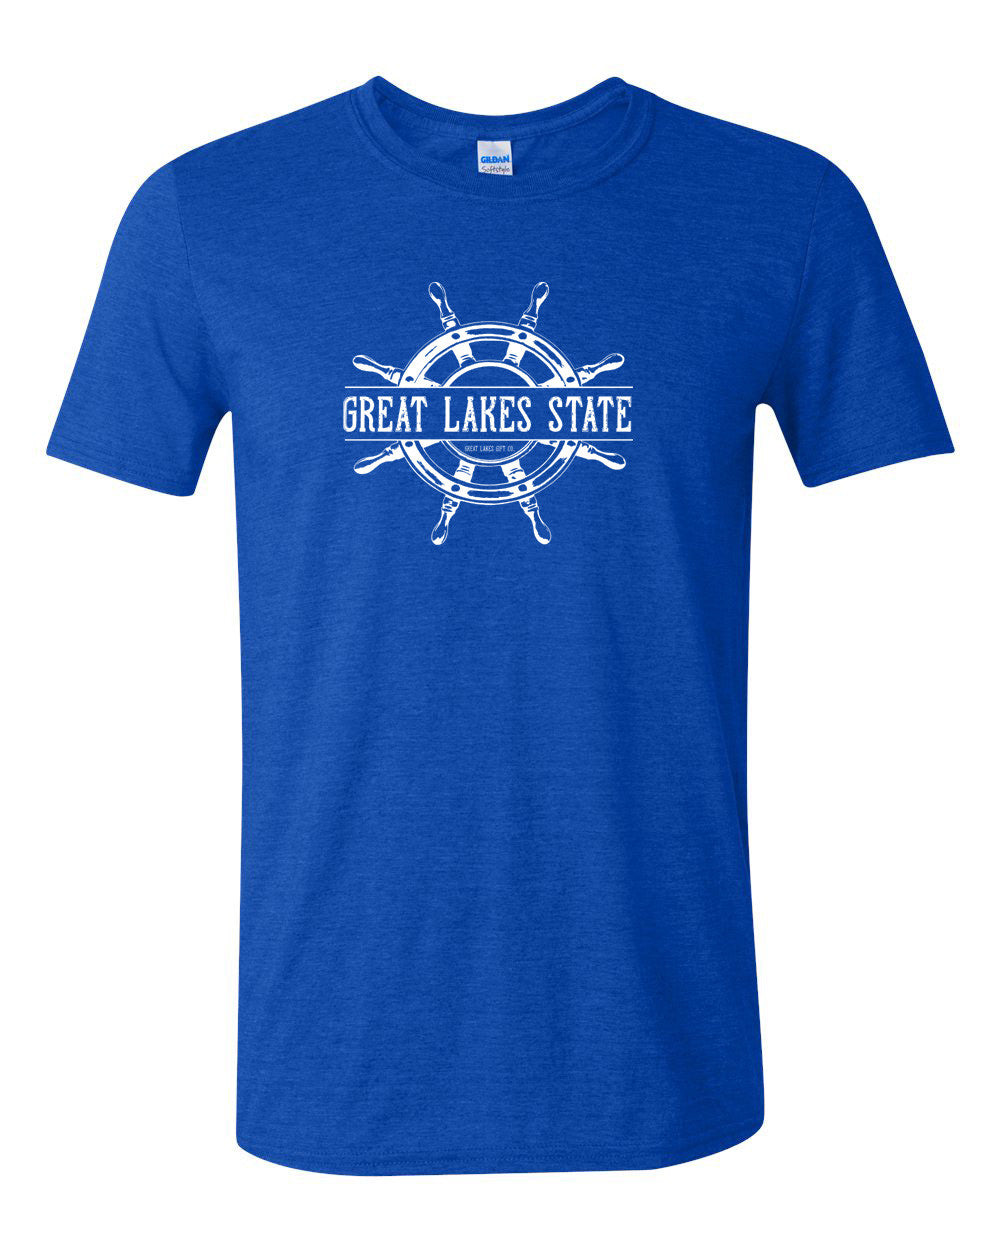 Men's Great Lake State T-Shirt - Great Lakes Gift Co.